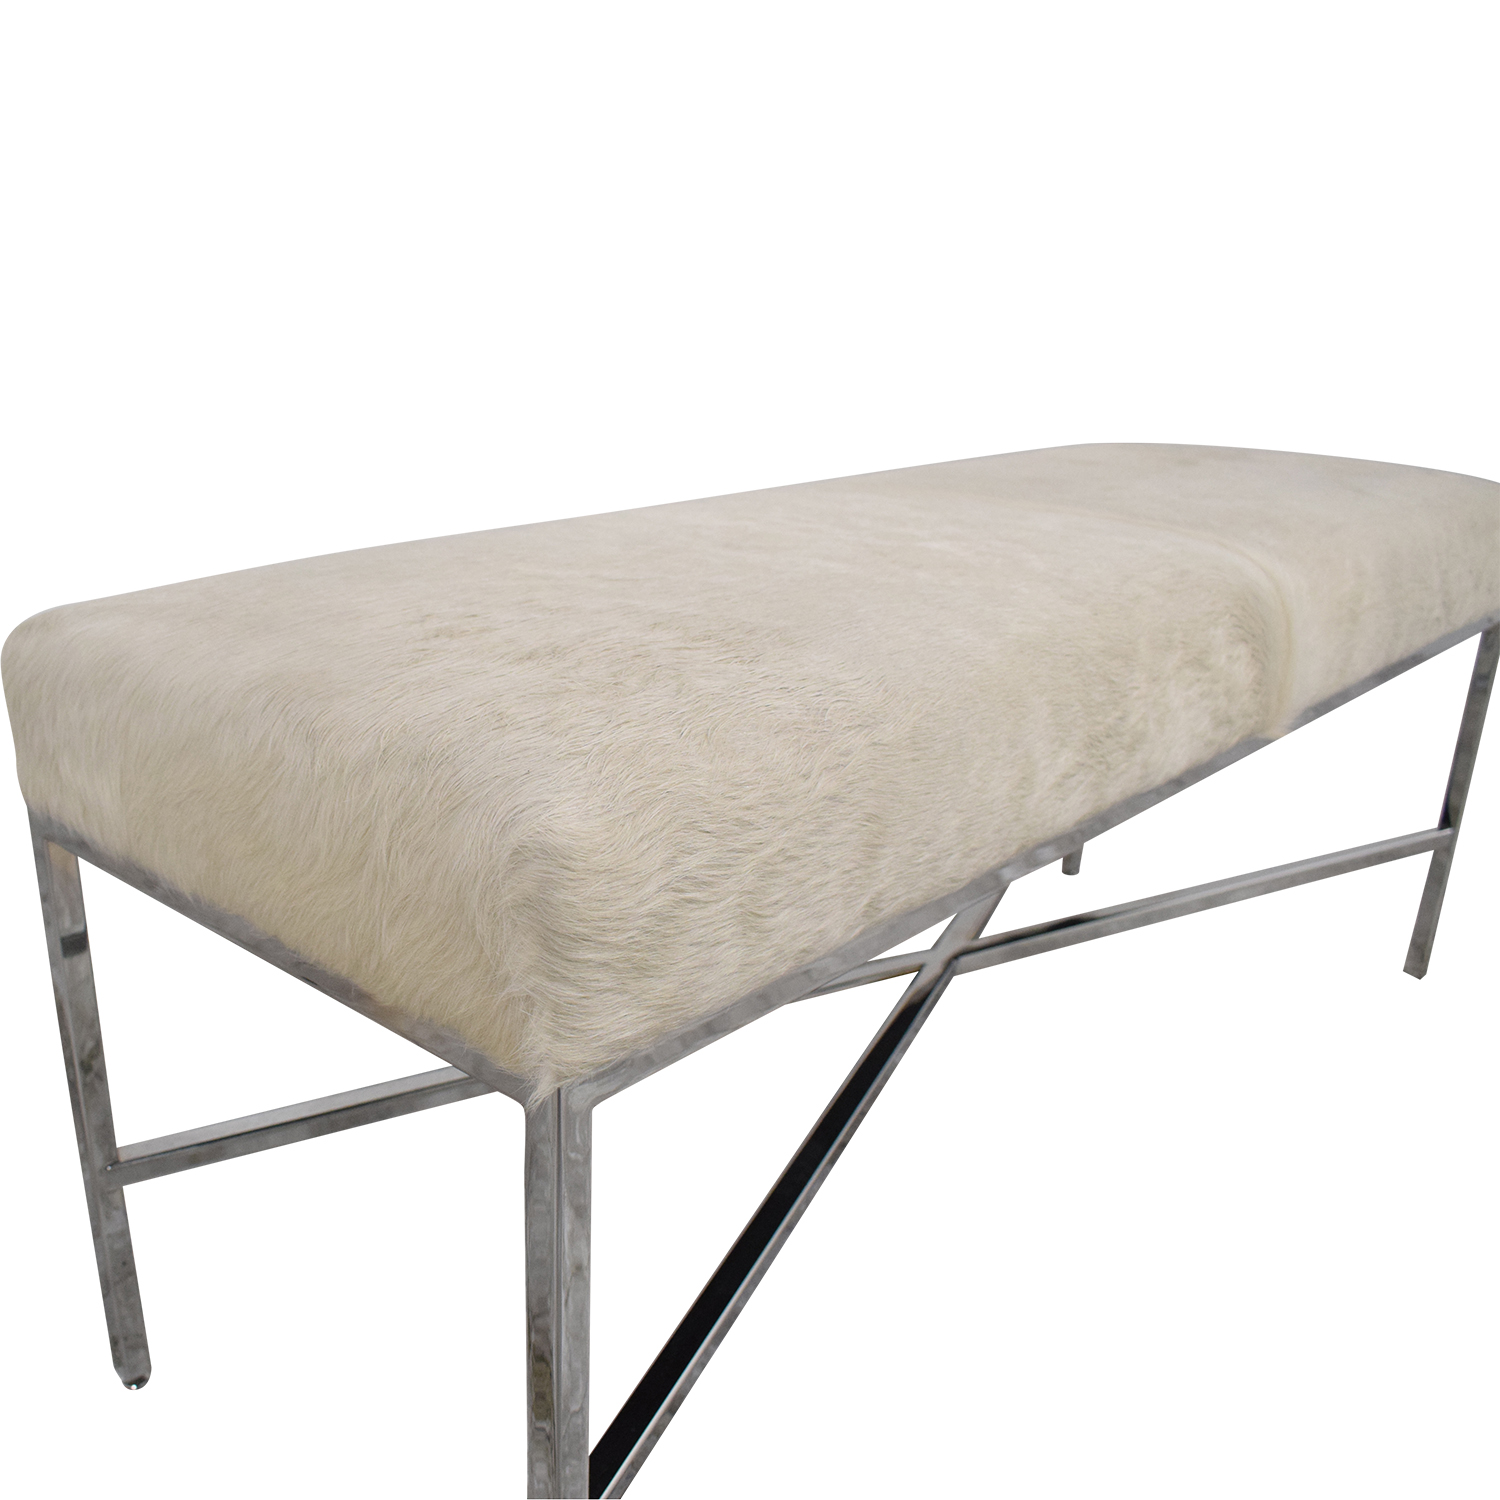 Outpost Original Outpost Original Metal Bench with Cowhide price